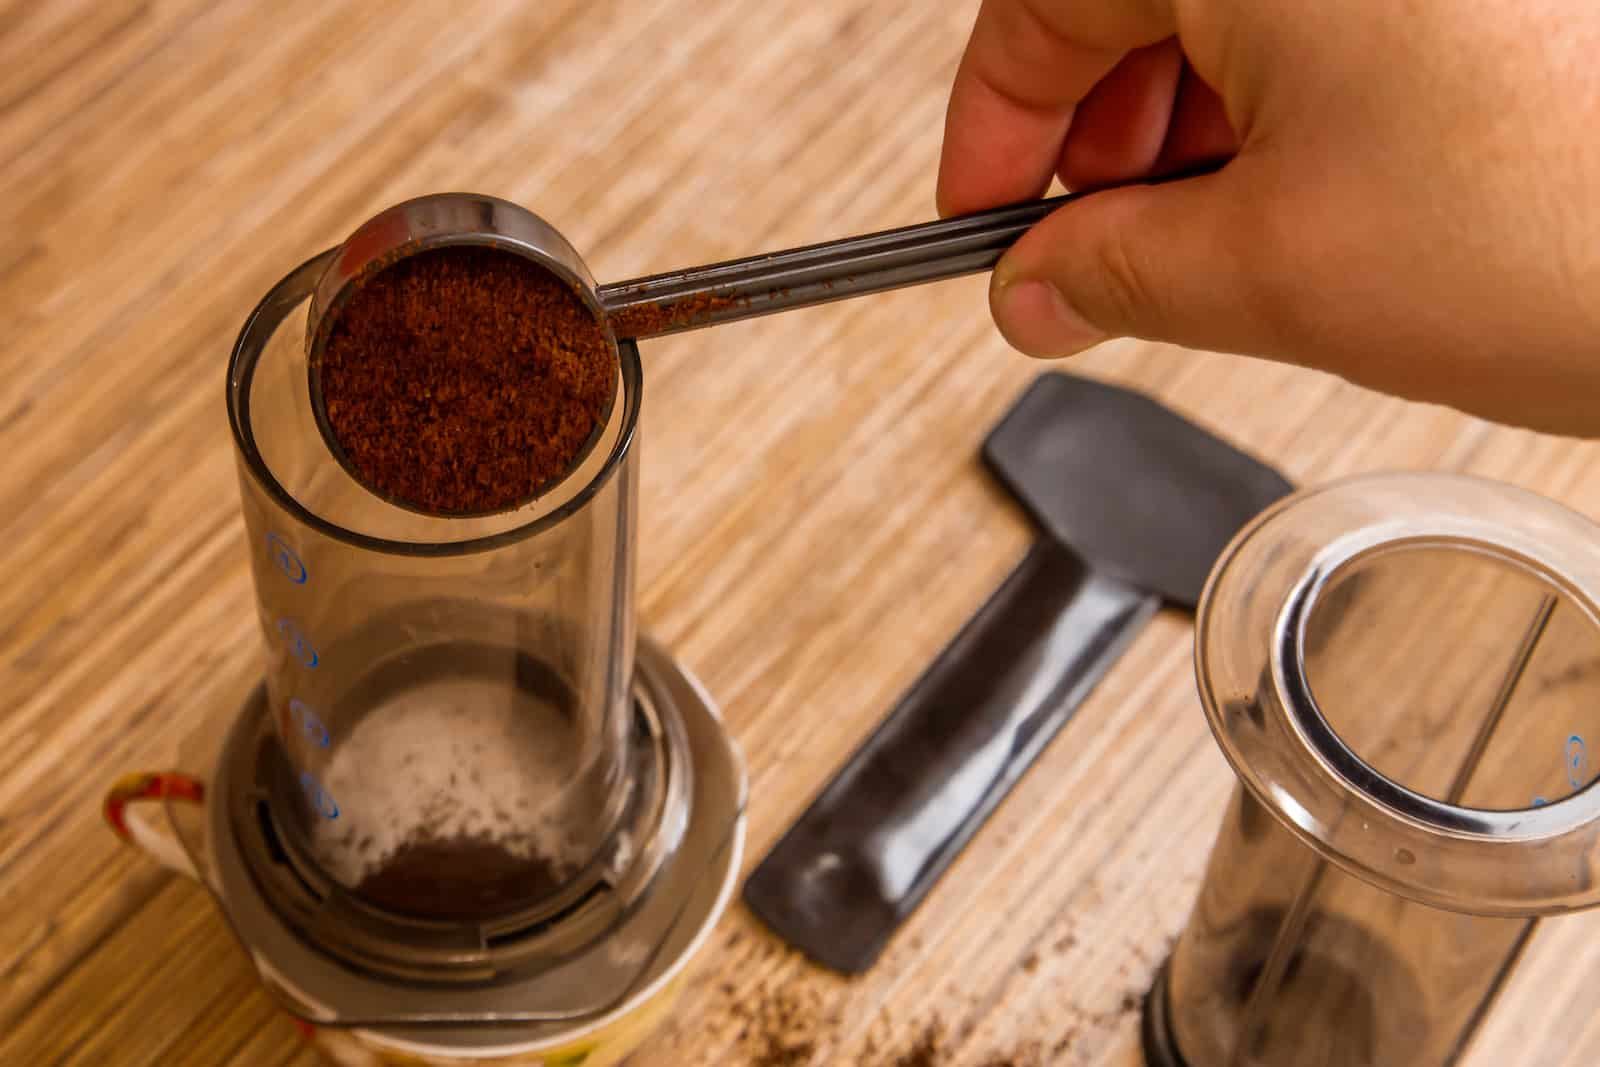 putting-coffee-in-an-aeropress